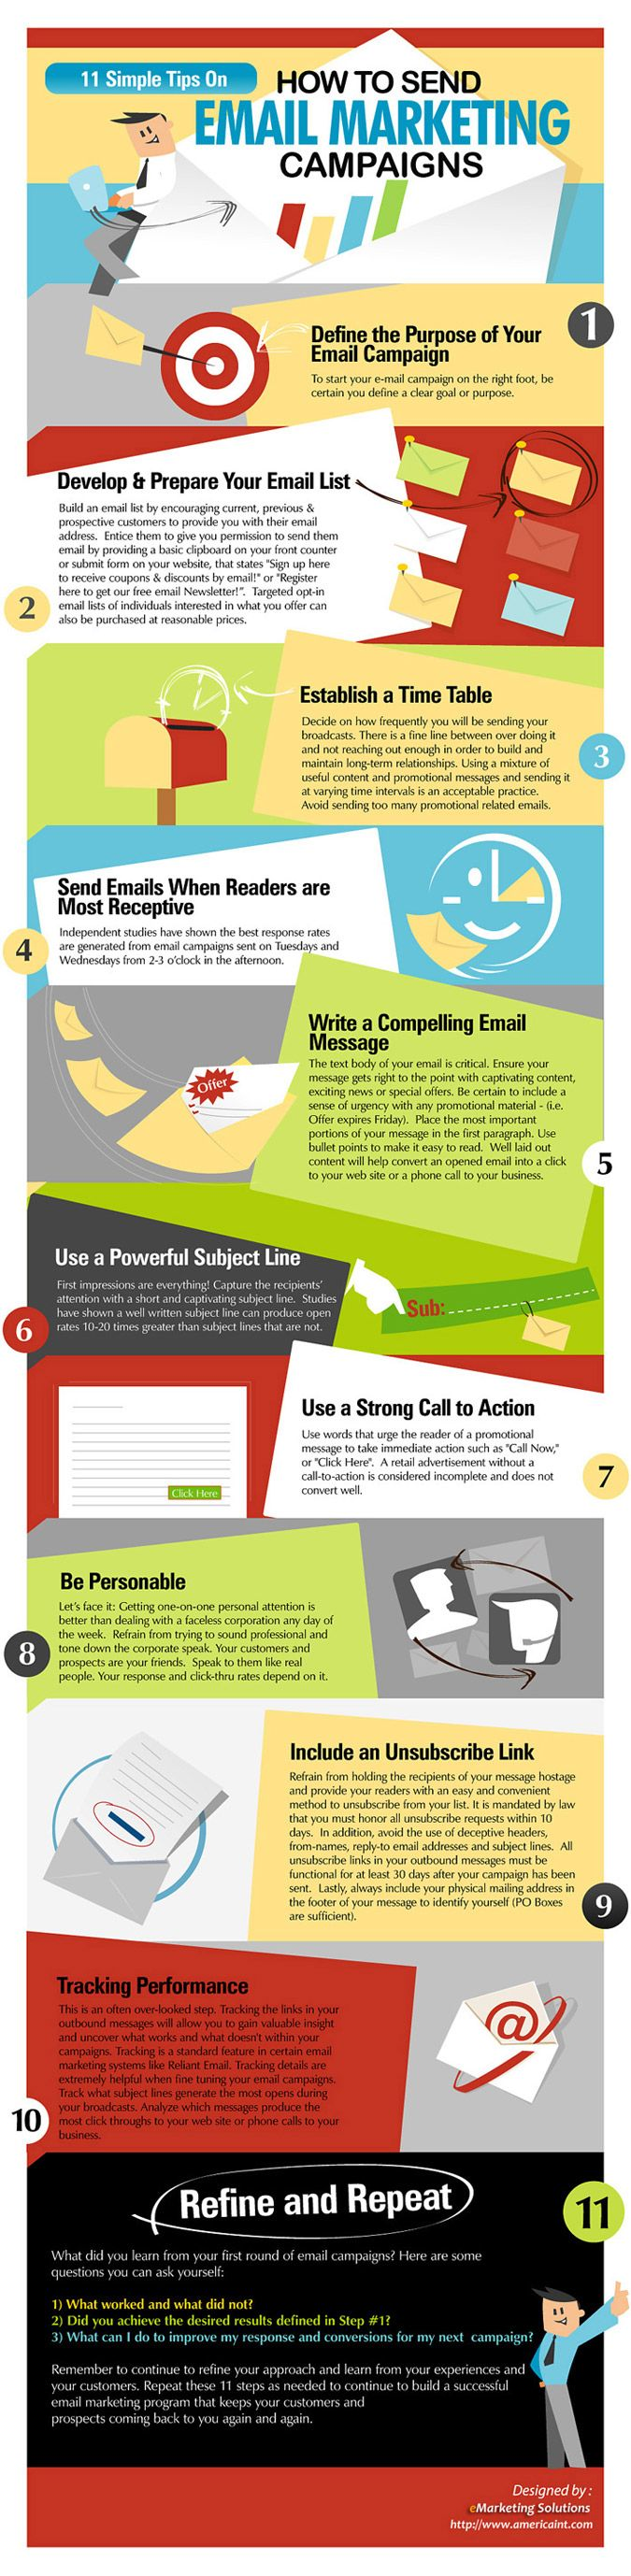 11 Email Marketing Tips that Rock  Looks great! Any of you sent it yet?